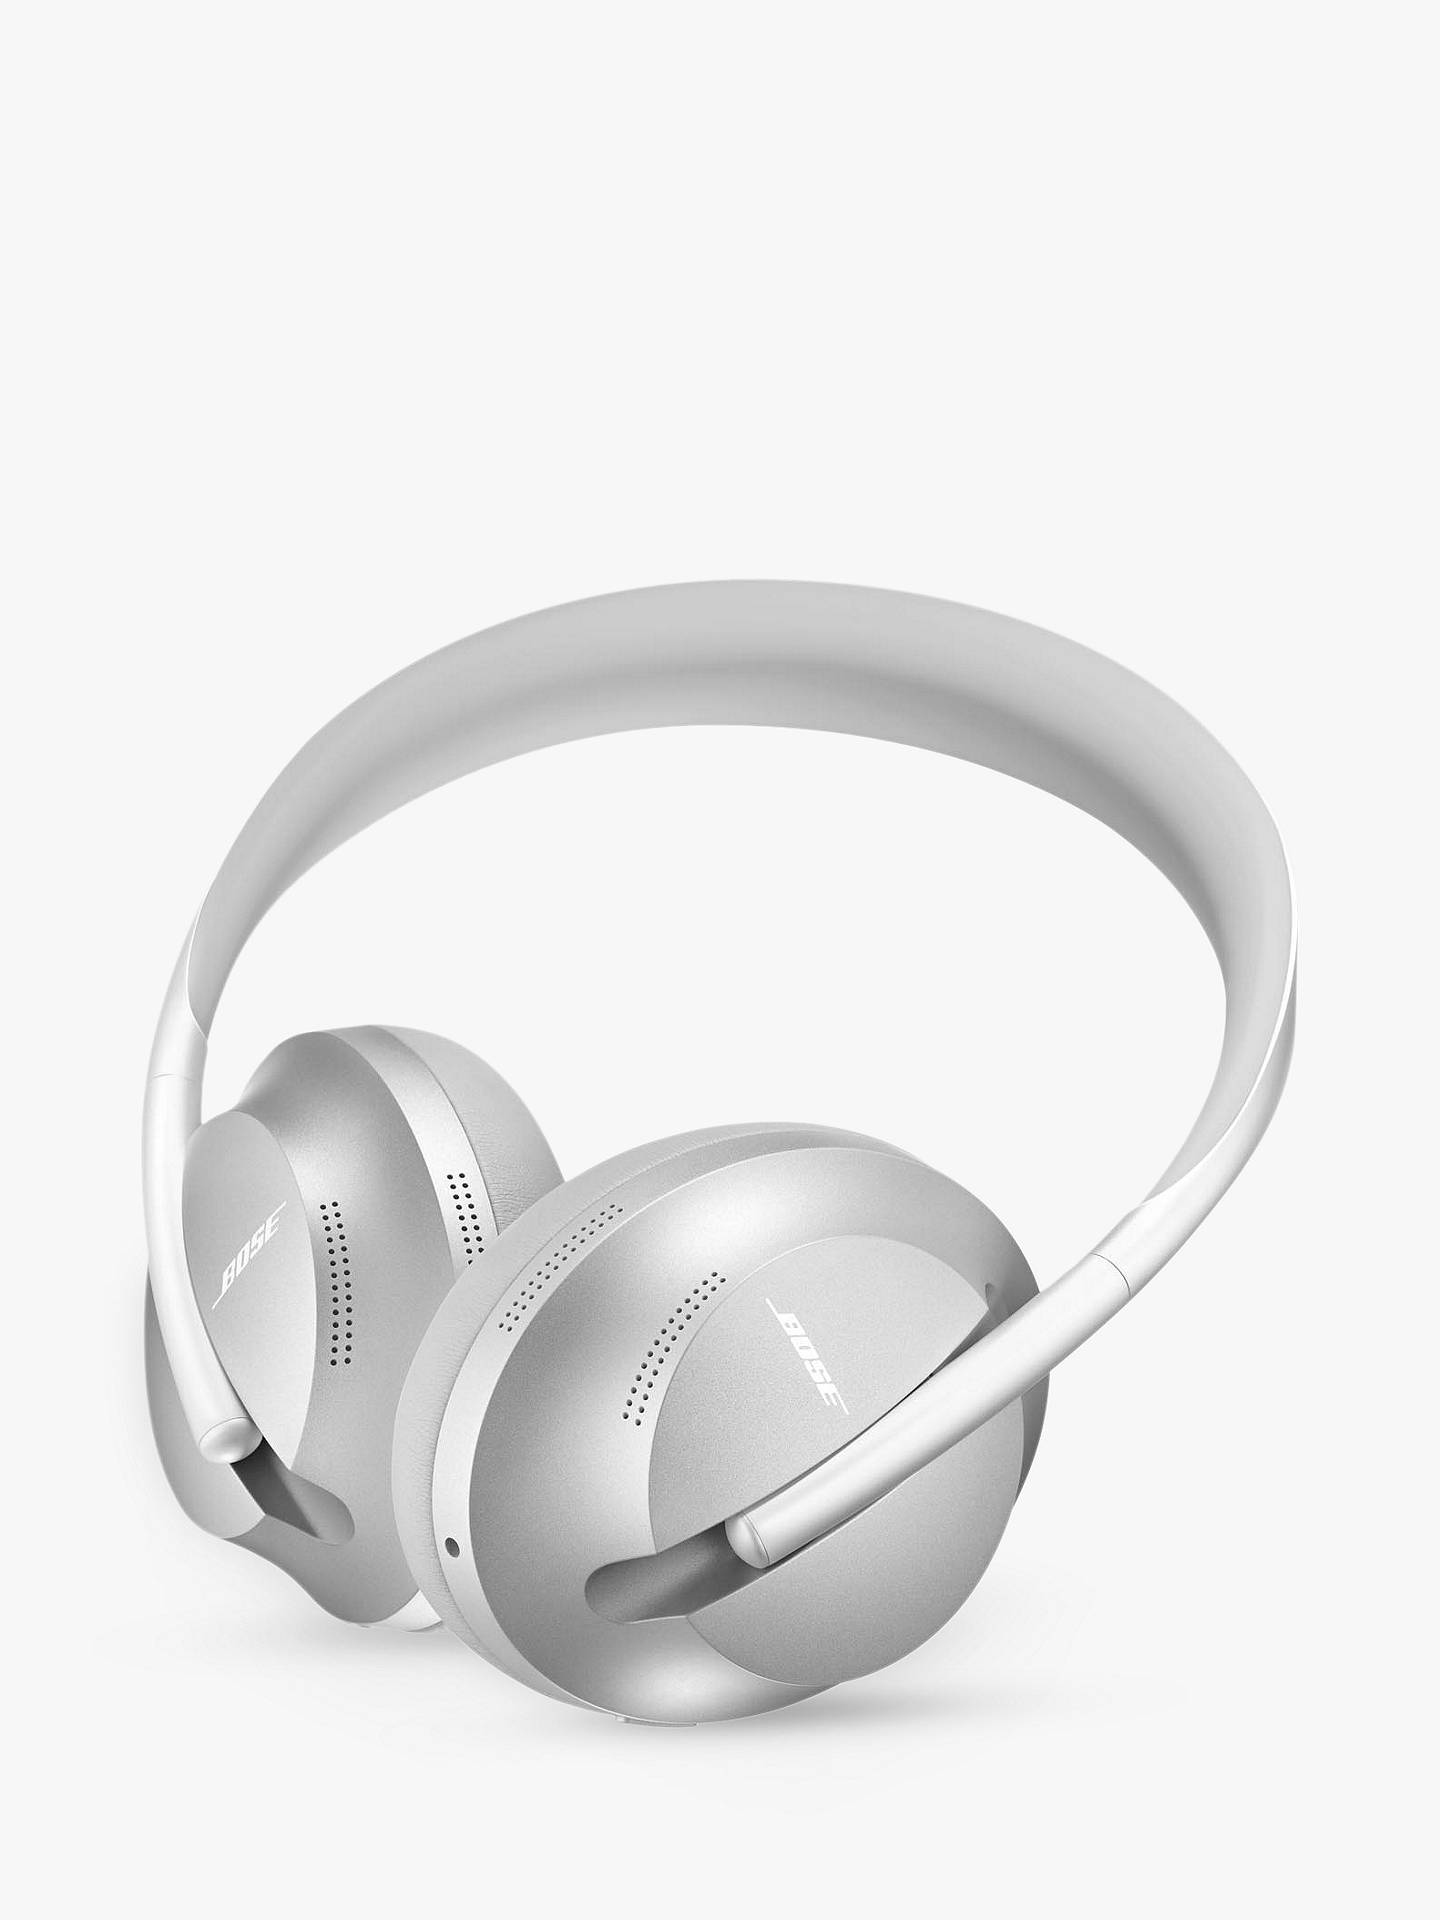 Buy Bose® 700 Noise Cancelling Over-Ear Wireless Bluetooth Headphones with Mic/Remote, Silver Online at johnlewis.com